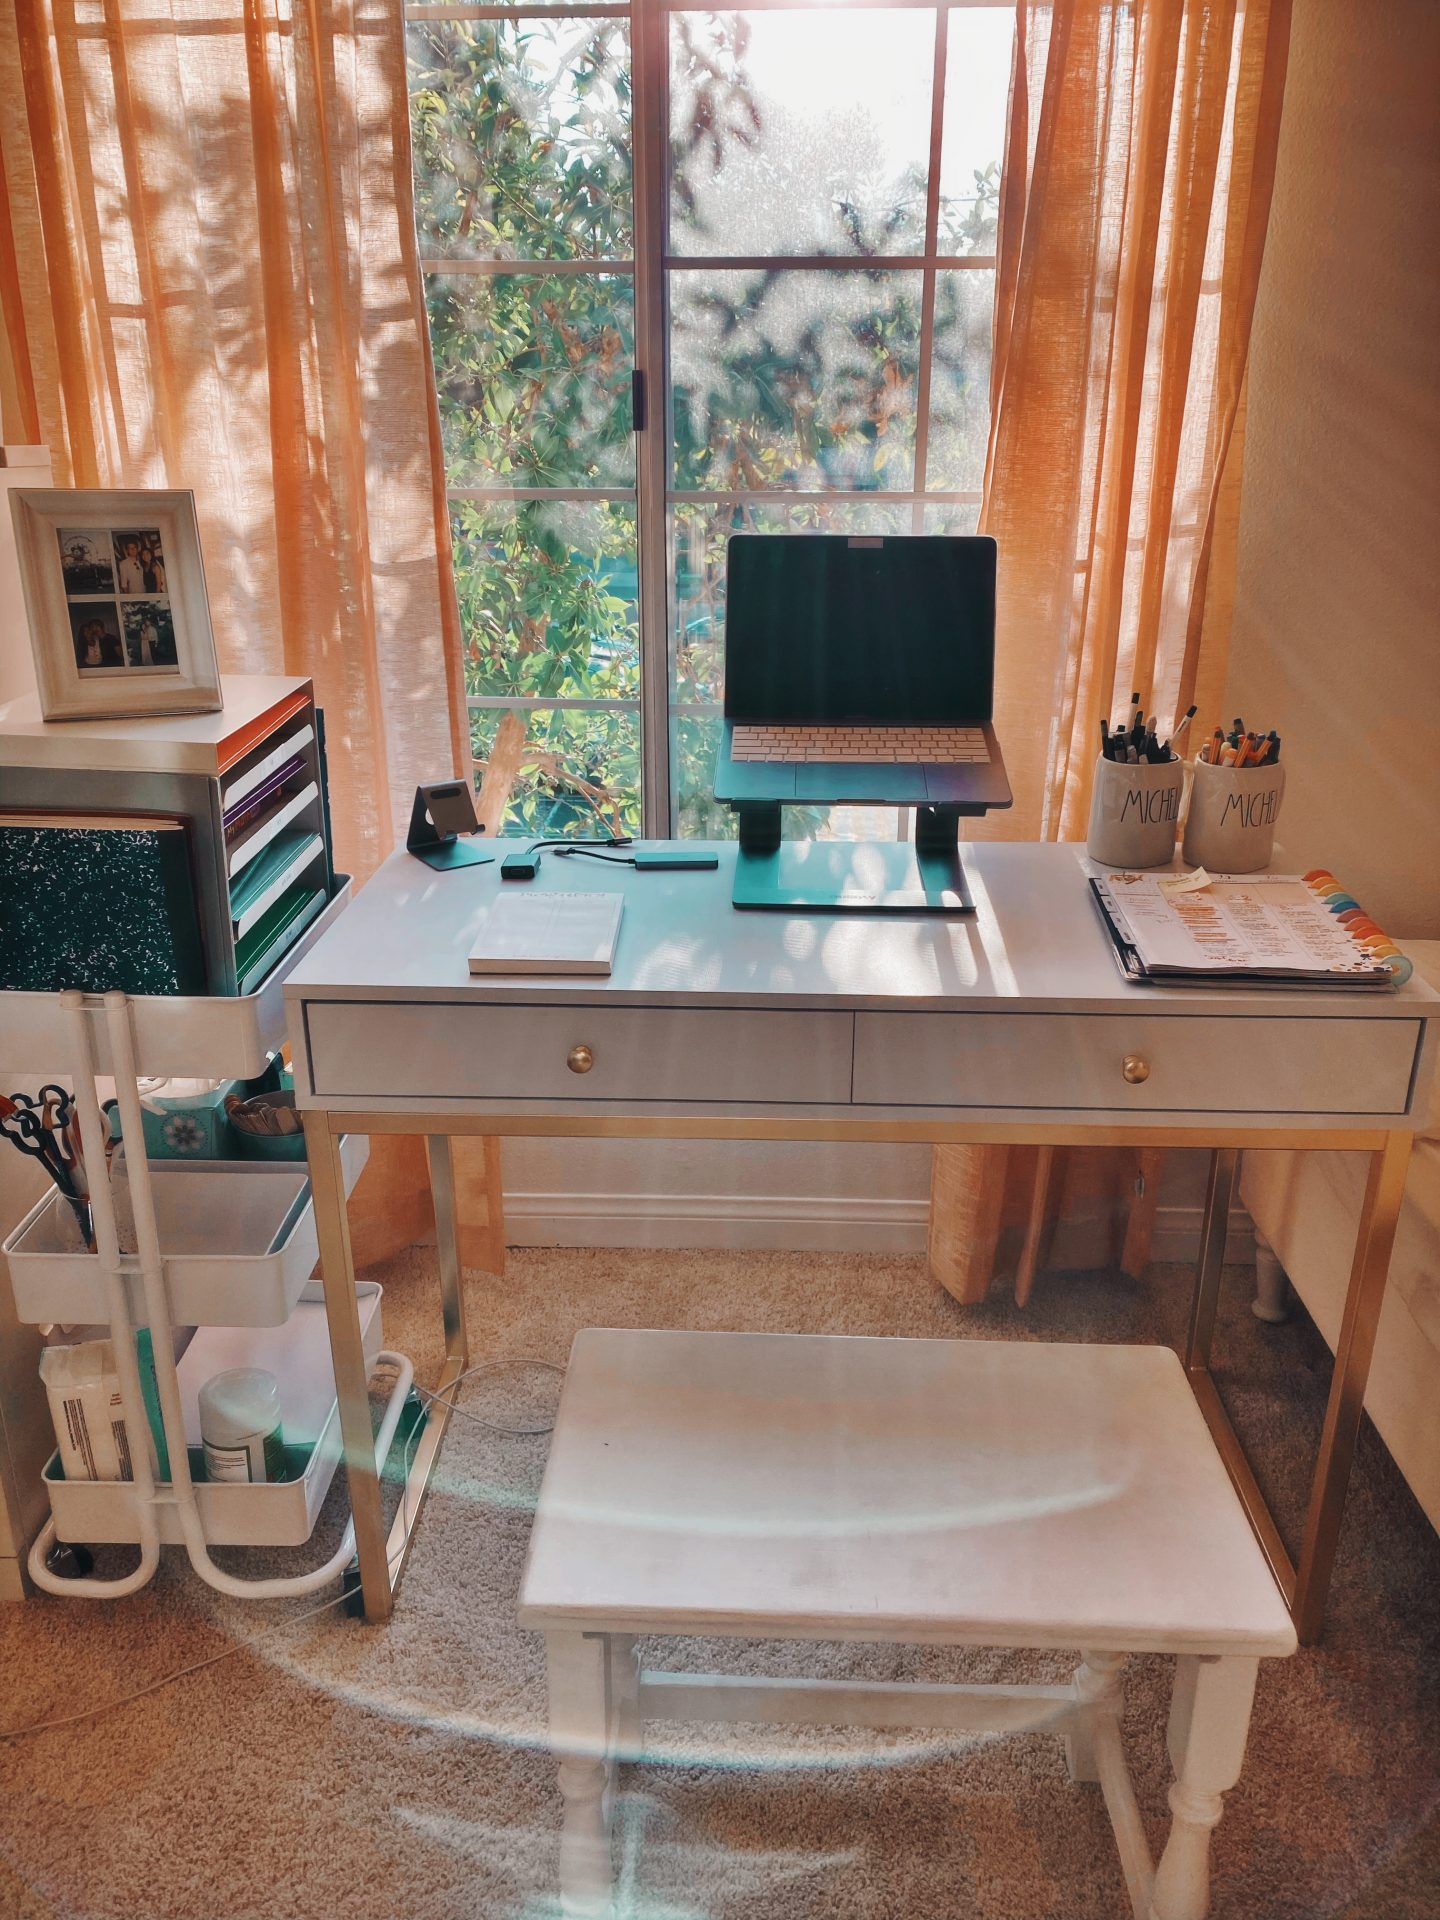 Need help with your distance learning home set up? Los Angeles Blogger My Teacher Got Style is sharing her tips on the perfect distance learning home set up here!